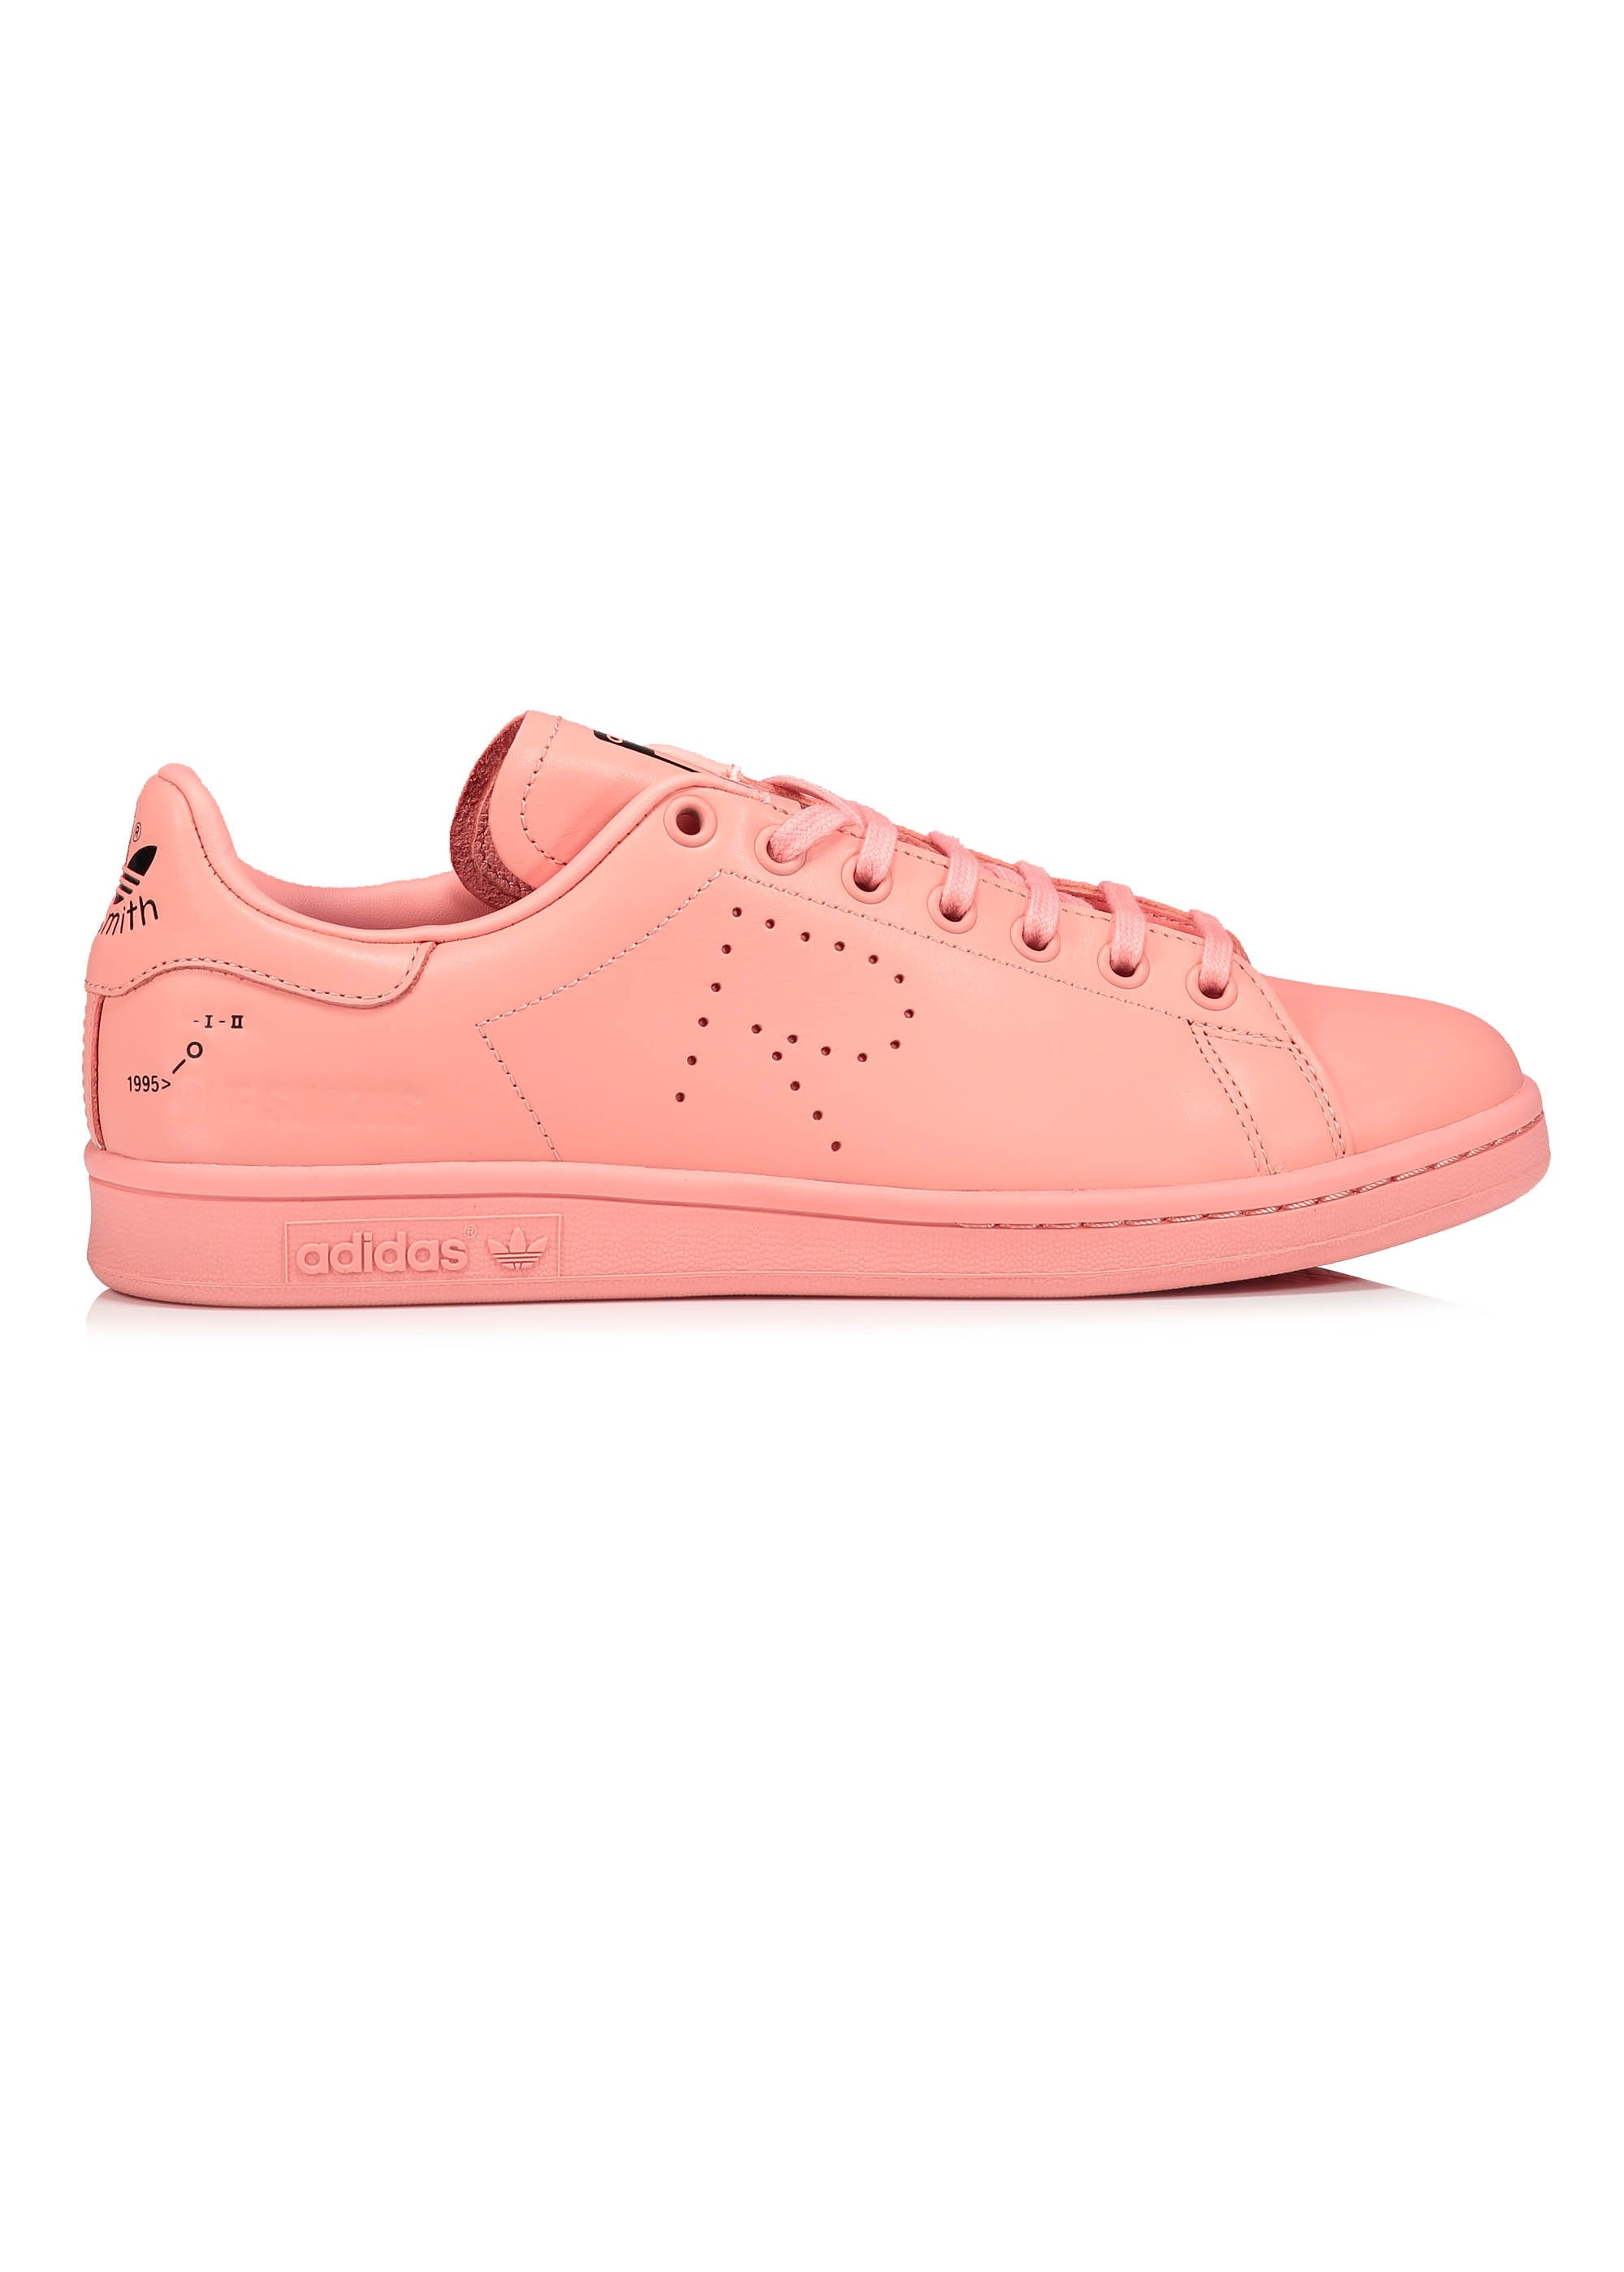 detailed look 7a5ea 7d6dd RS Stan Smith - Pink